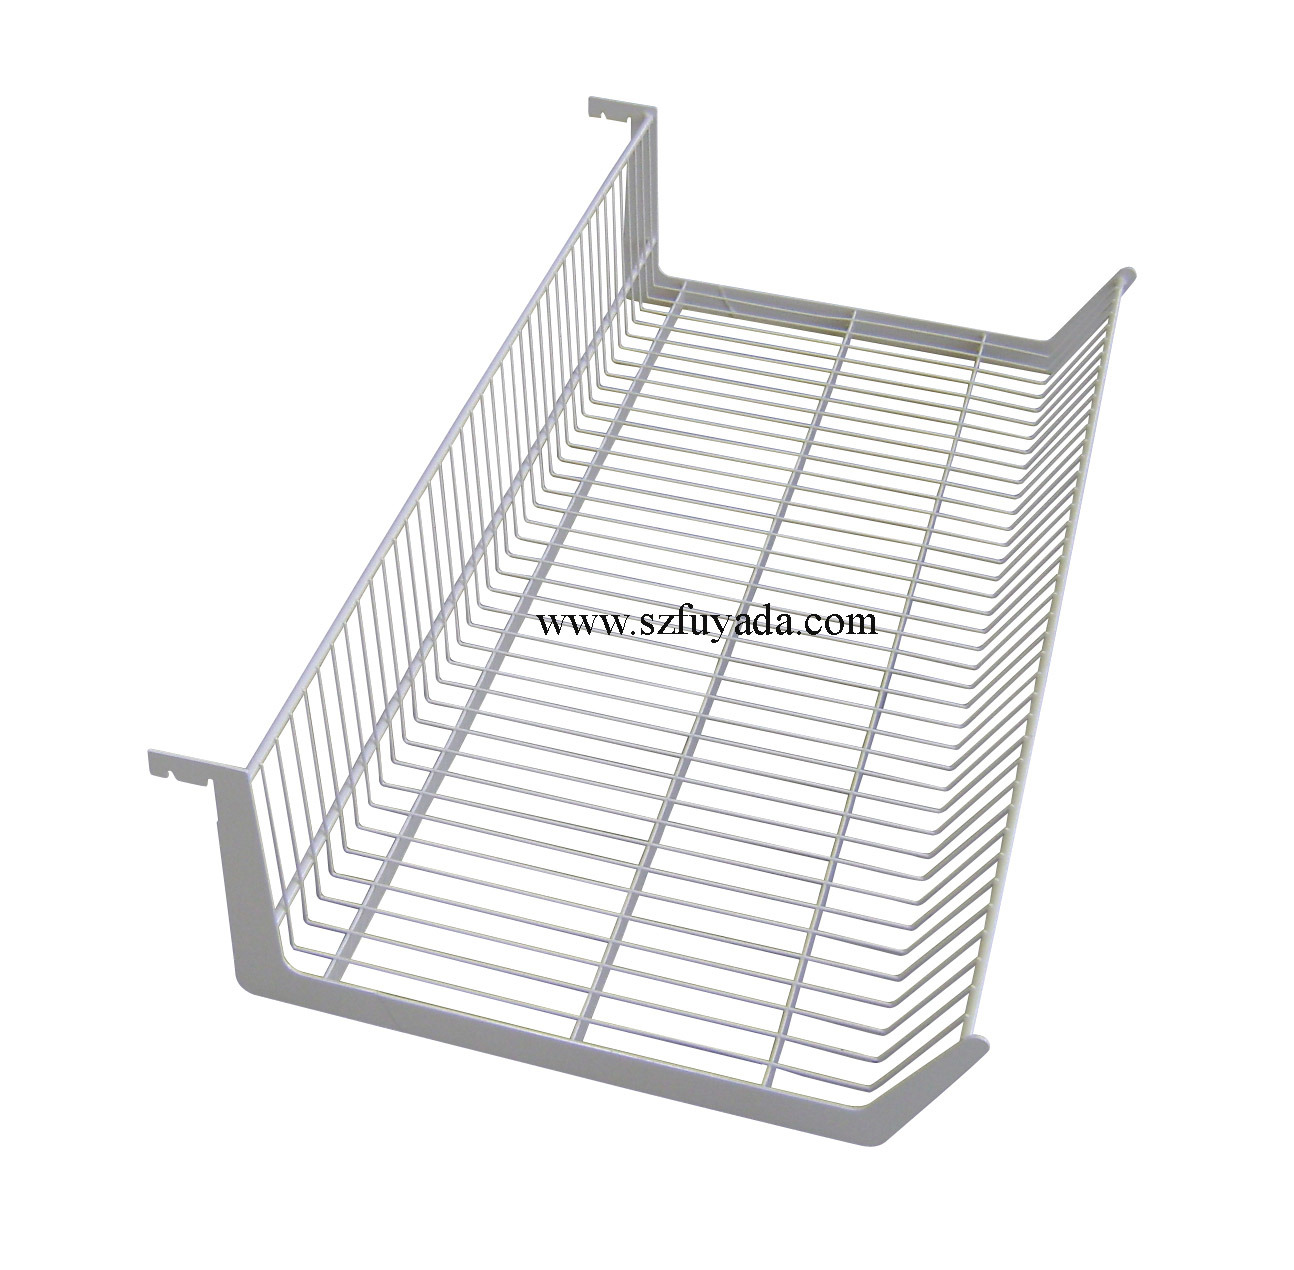 Wire Shelving Stand